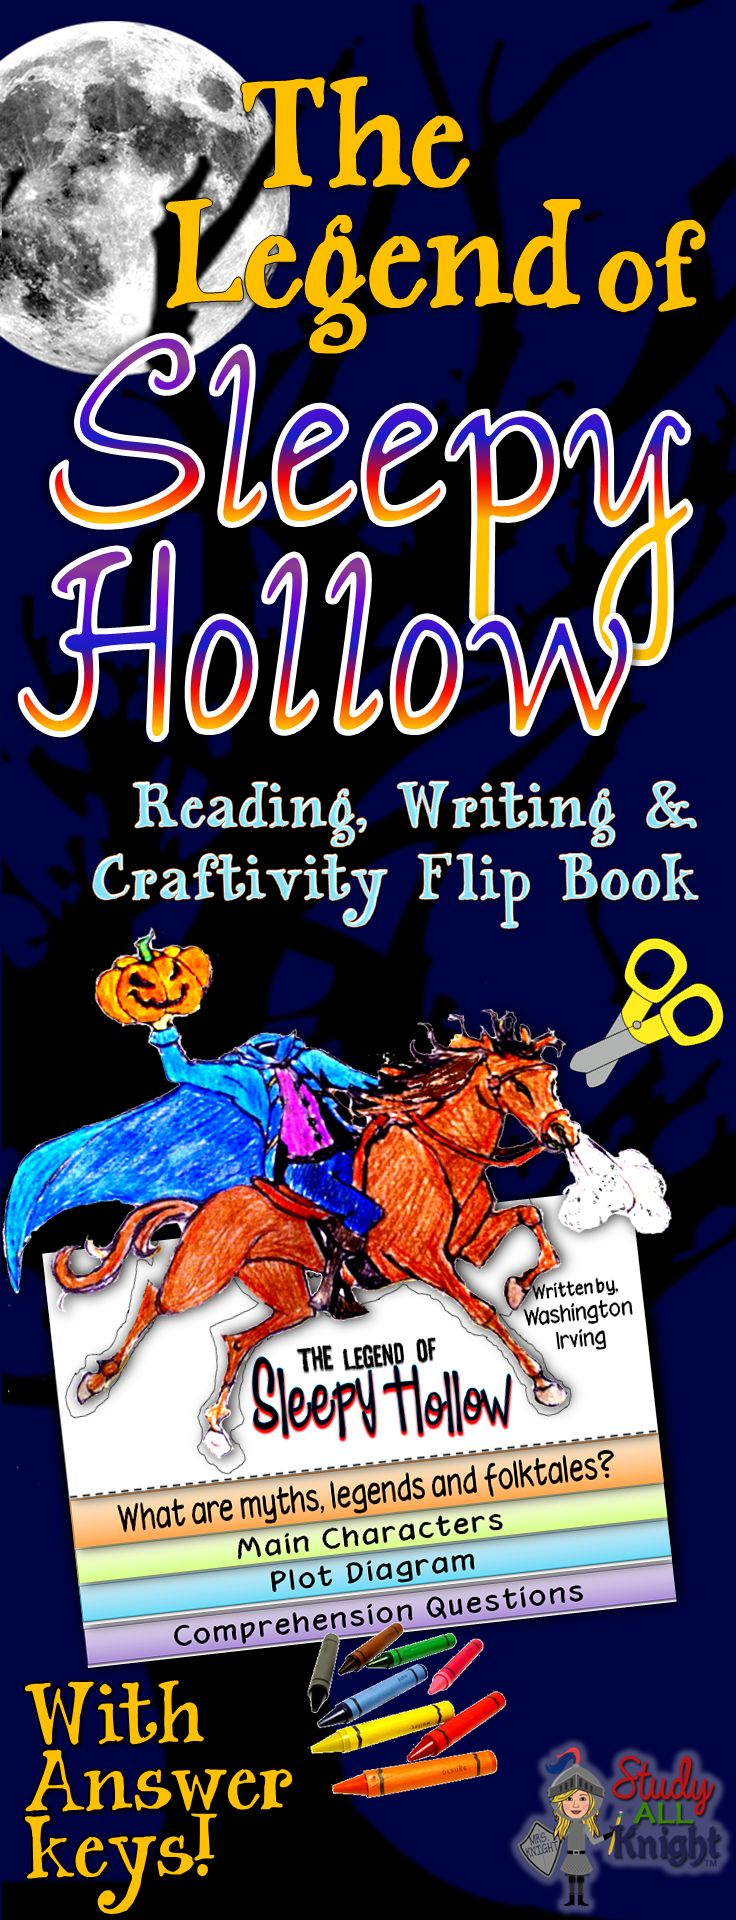 Book report example: The Legend of Sleepy Hollow by Washington Irving